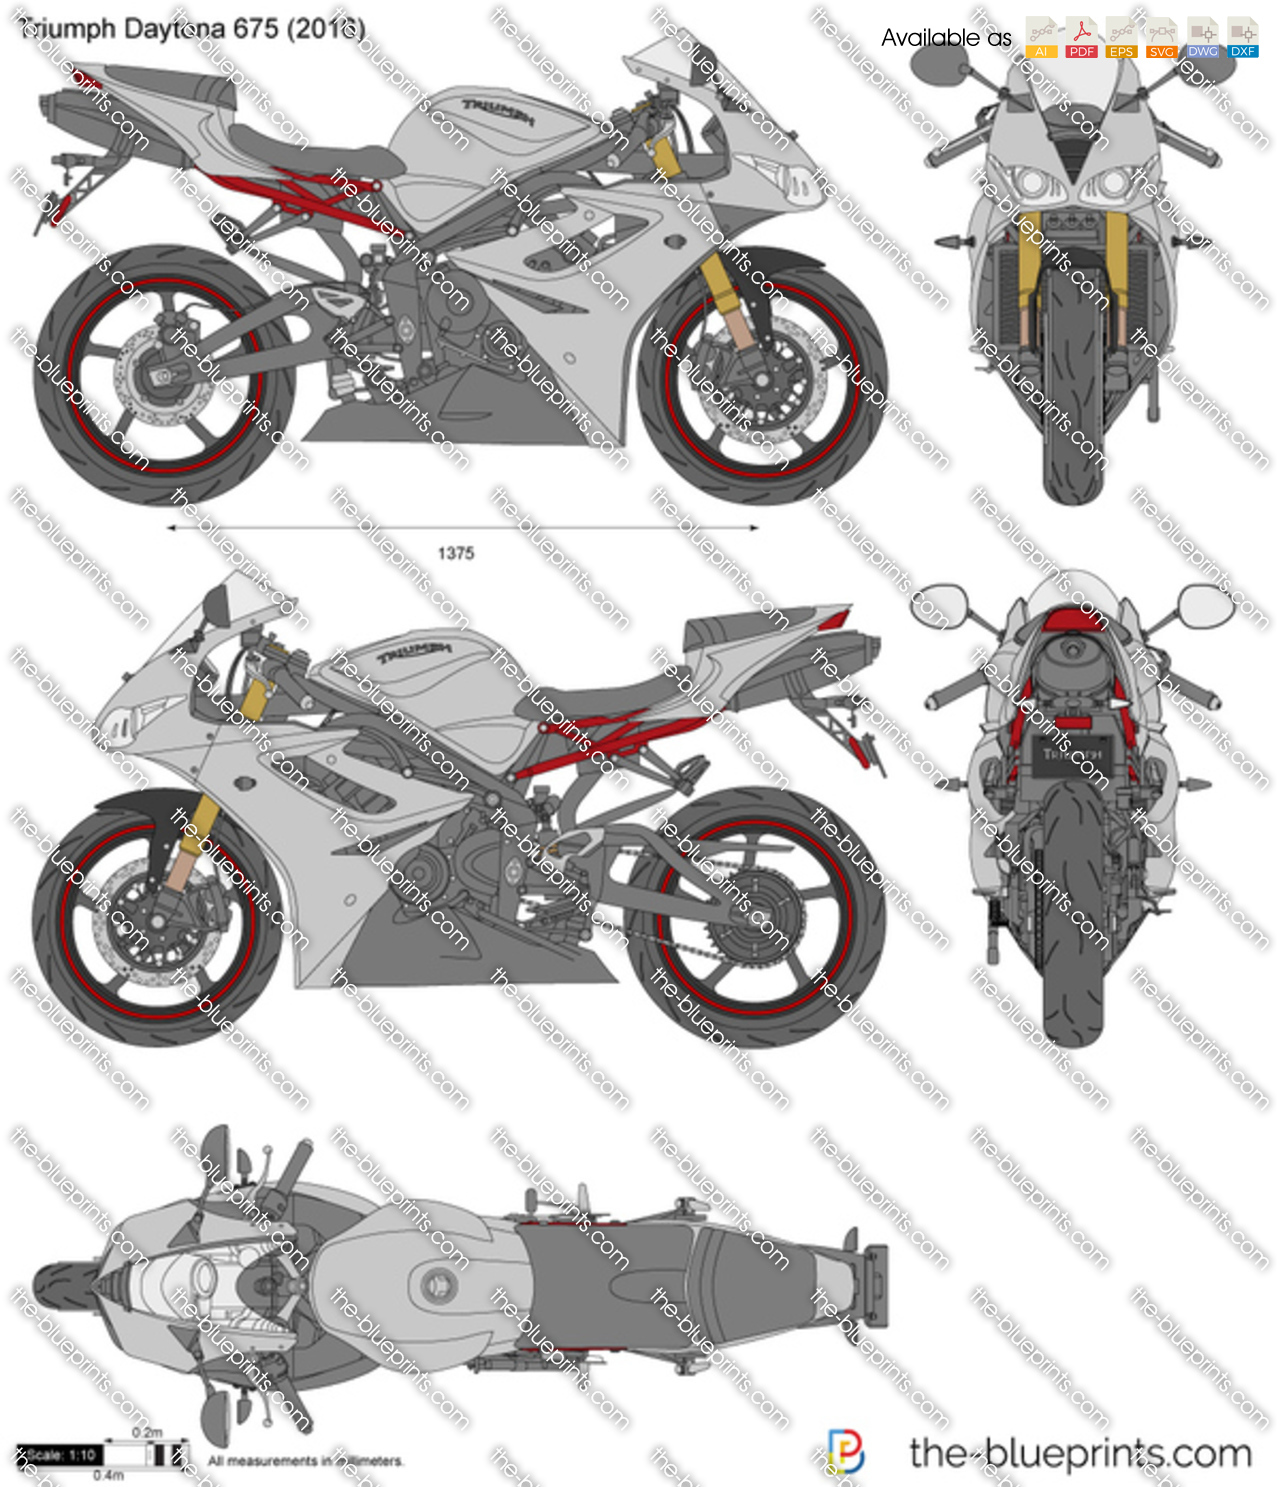 triumph daytona 675 vector drawing. Black Bedroom Furniture Sets. Home Design Ideas